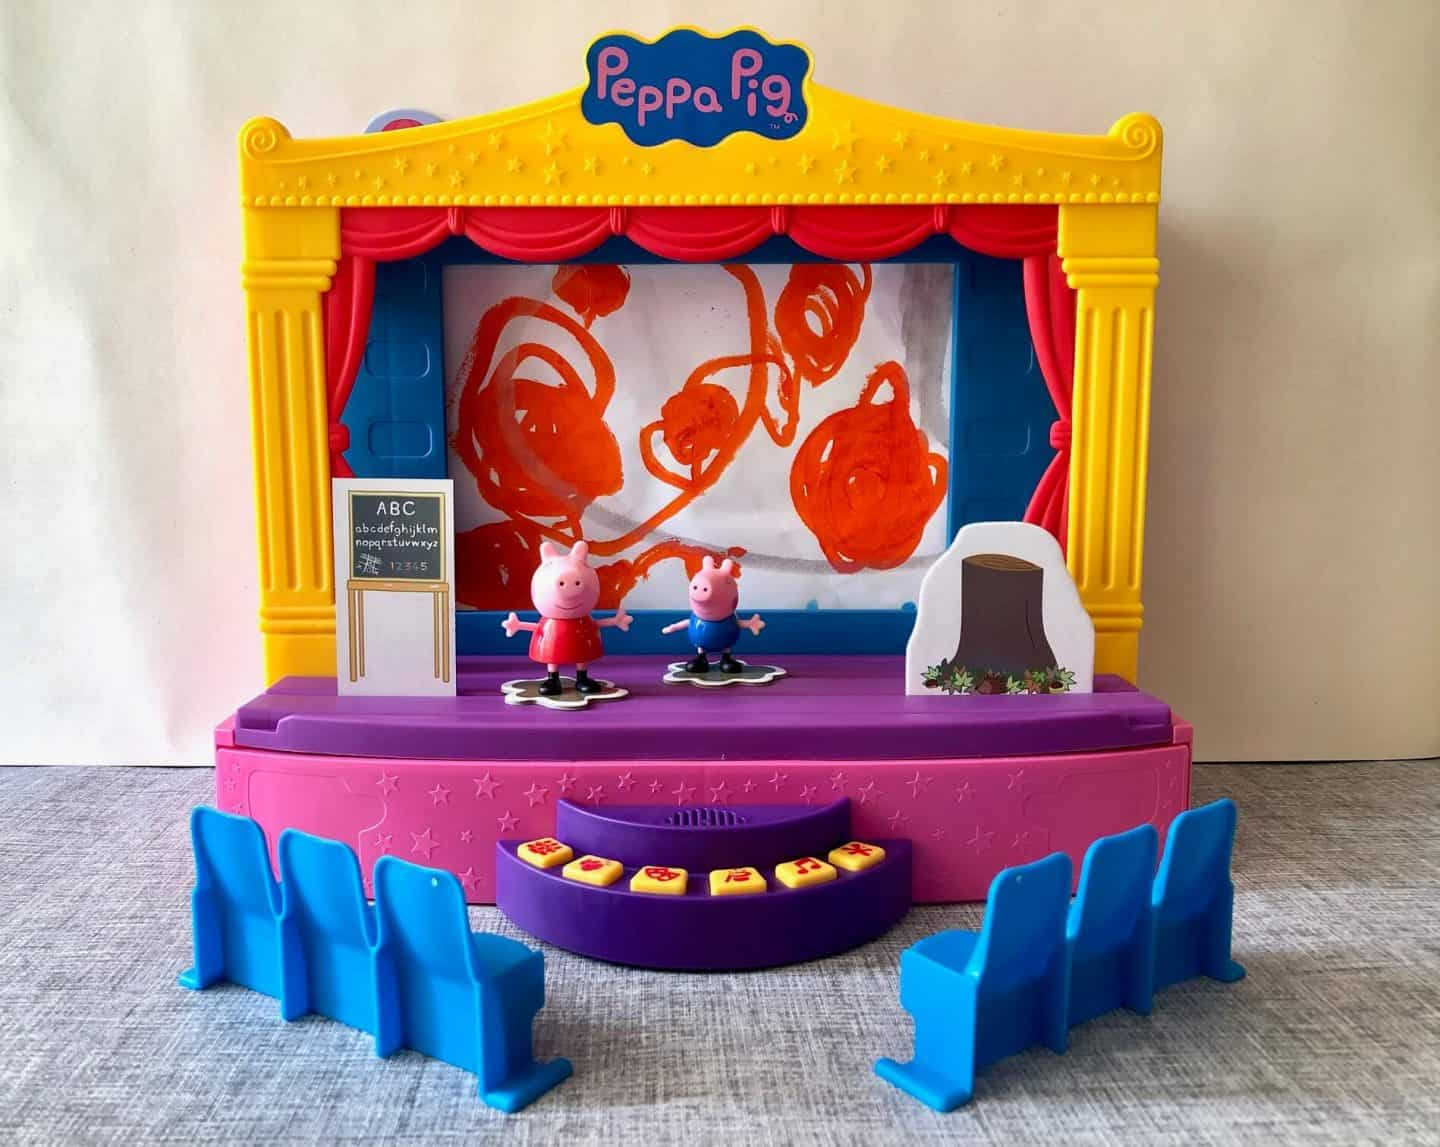 Peppa Pig Stage Playset Review with own drawing as background